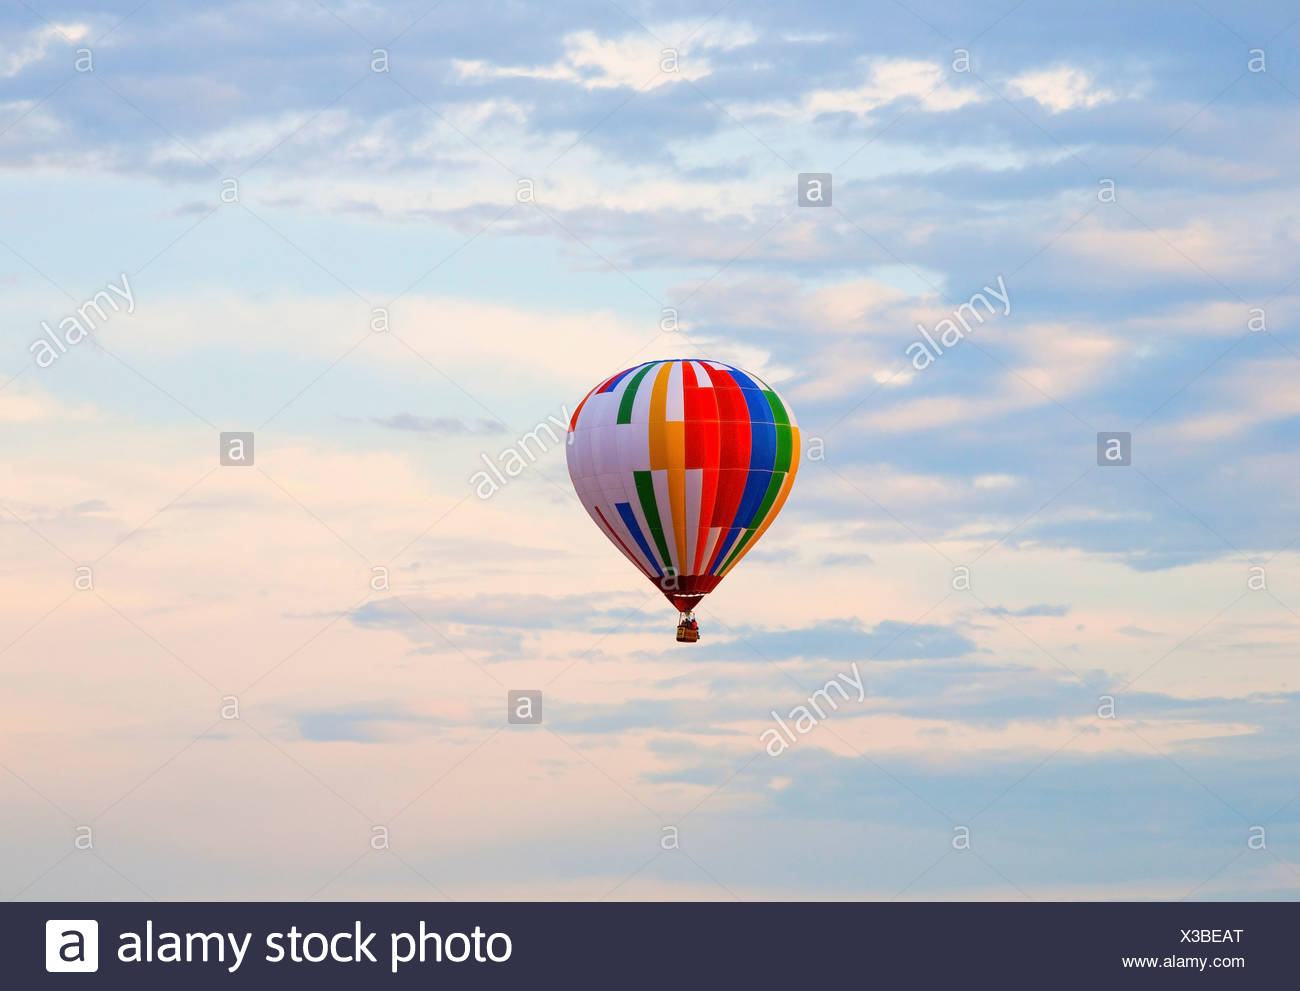 hot air balloon in flight; st. jean sur richelieu, quebec, canada - Stock Image